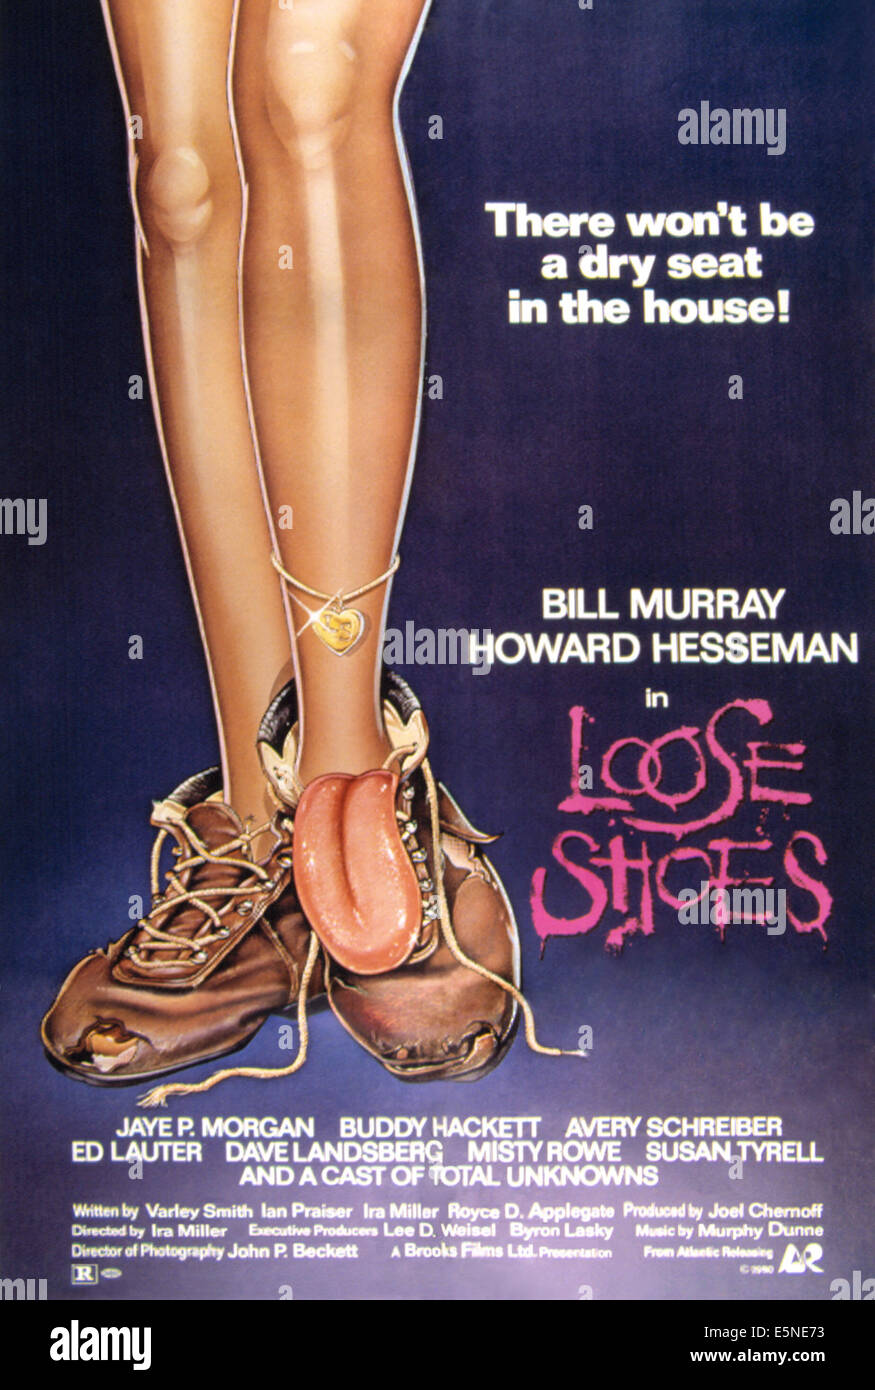 LOOSE SHOES, 1980 - Stock Image